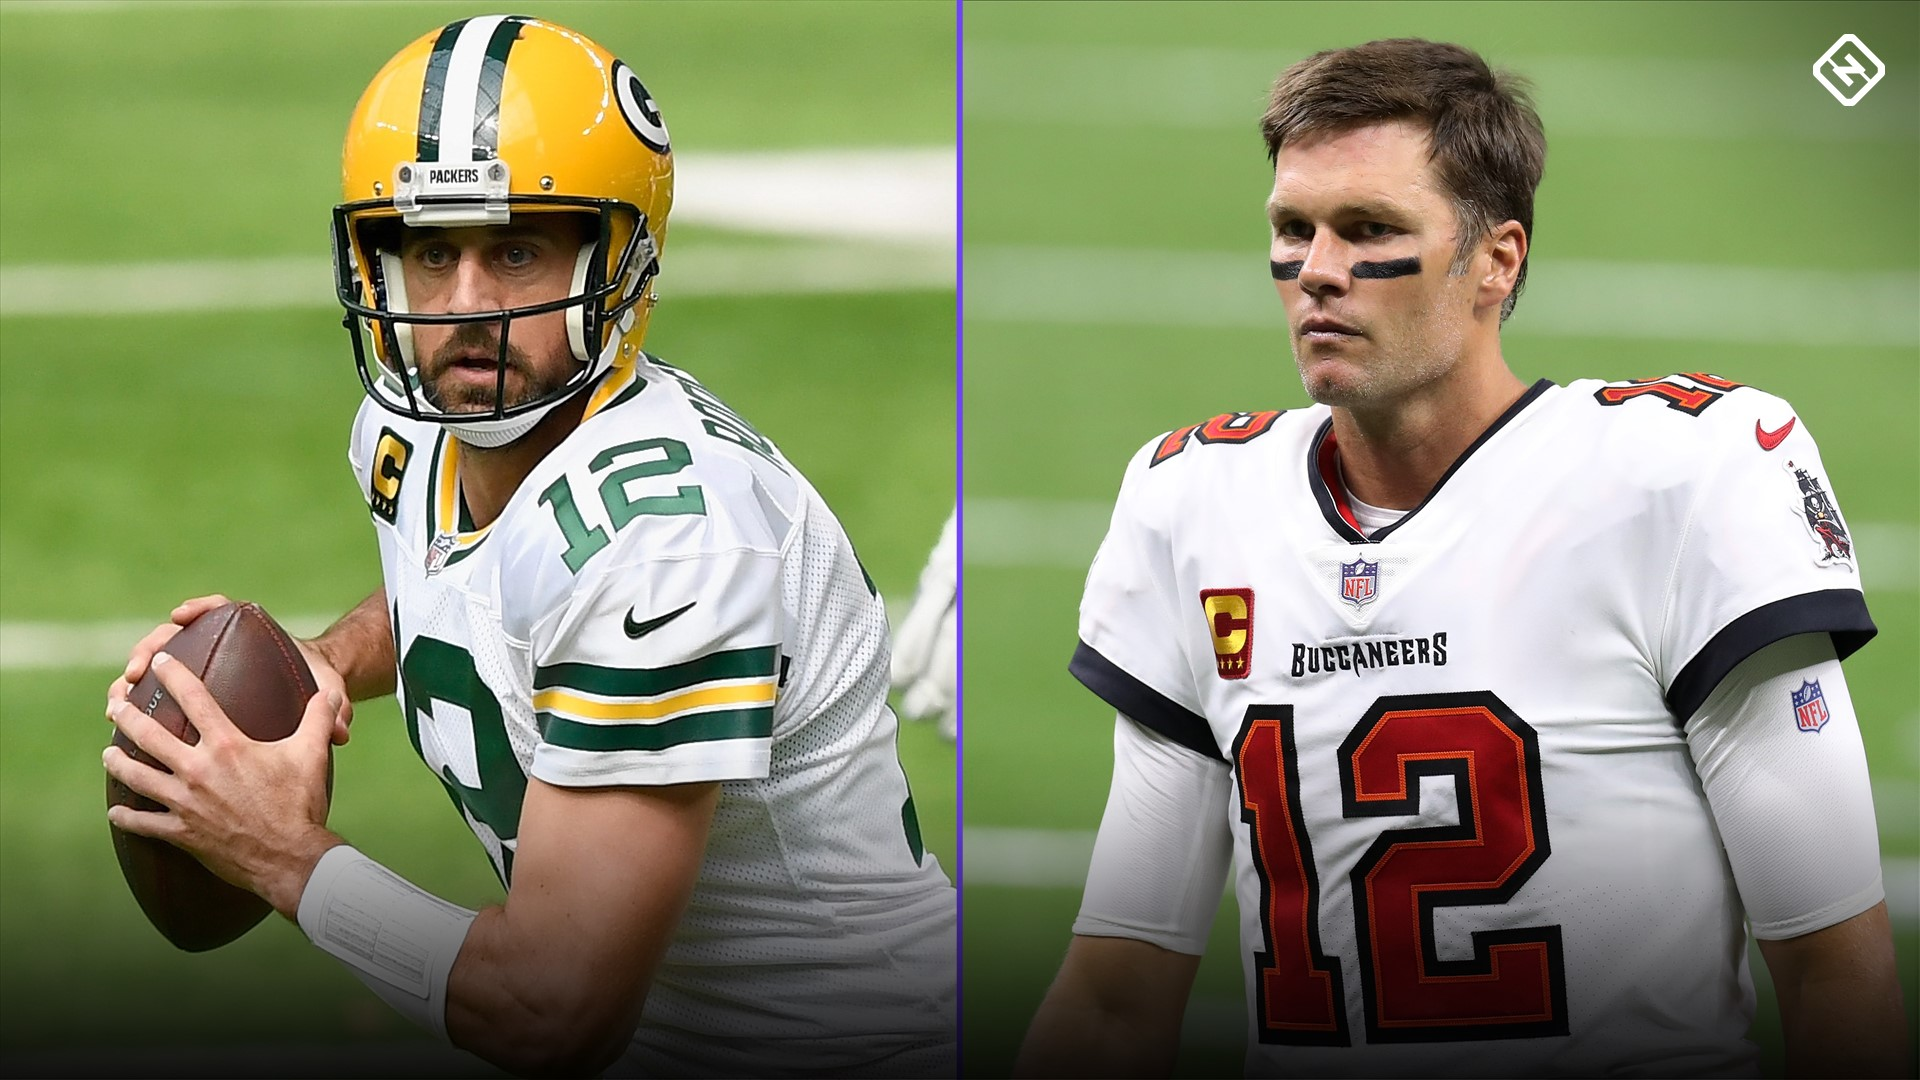 Aaron Rodgers for MVP, Tom Brady is done, 49ers are hung over: Worst overreactions from NFL Week 1 1